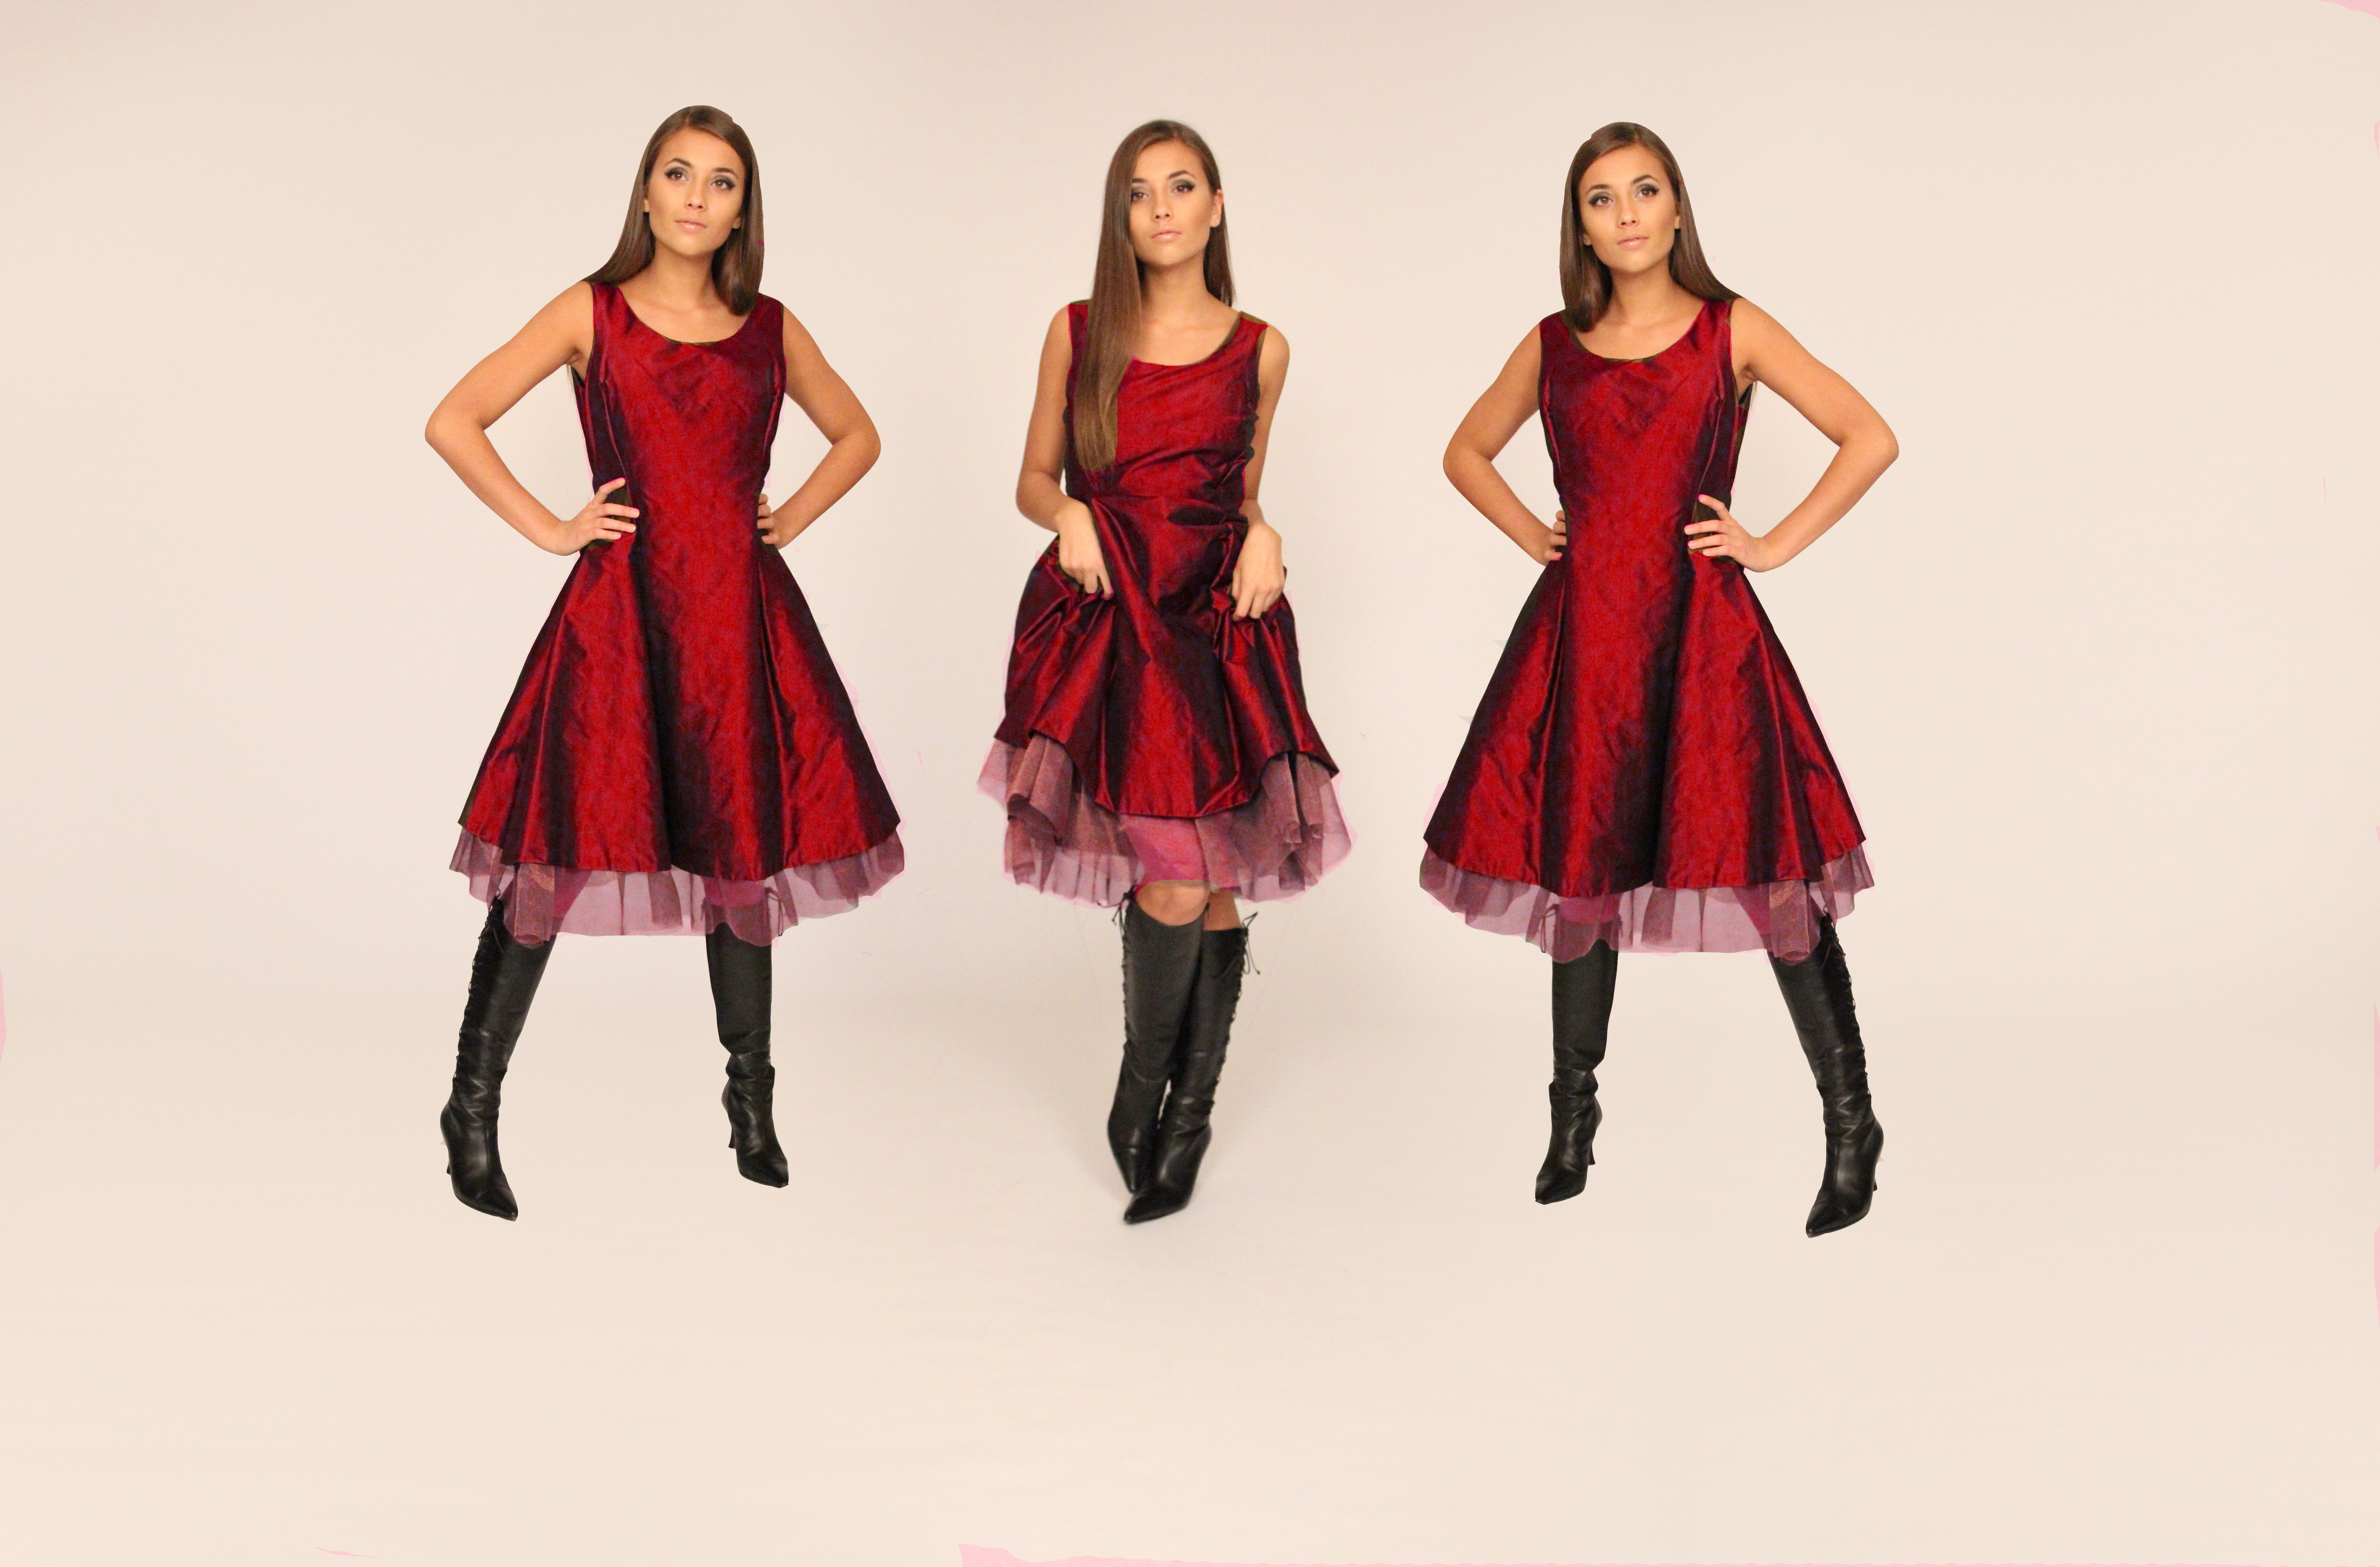 copper RED taffeta mesh dress x3 Alexis